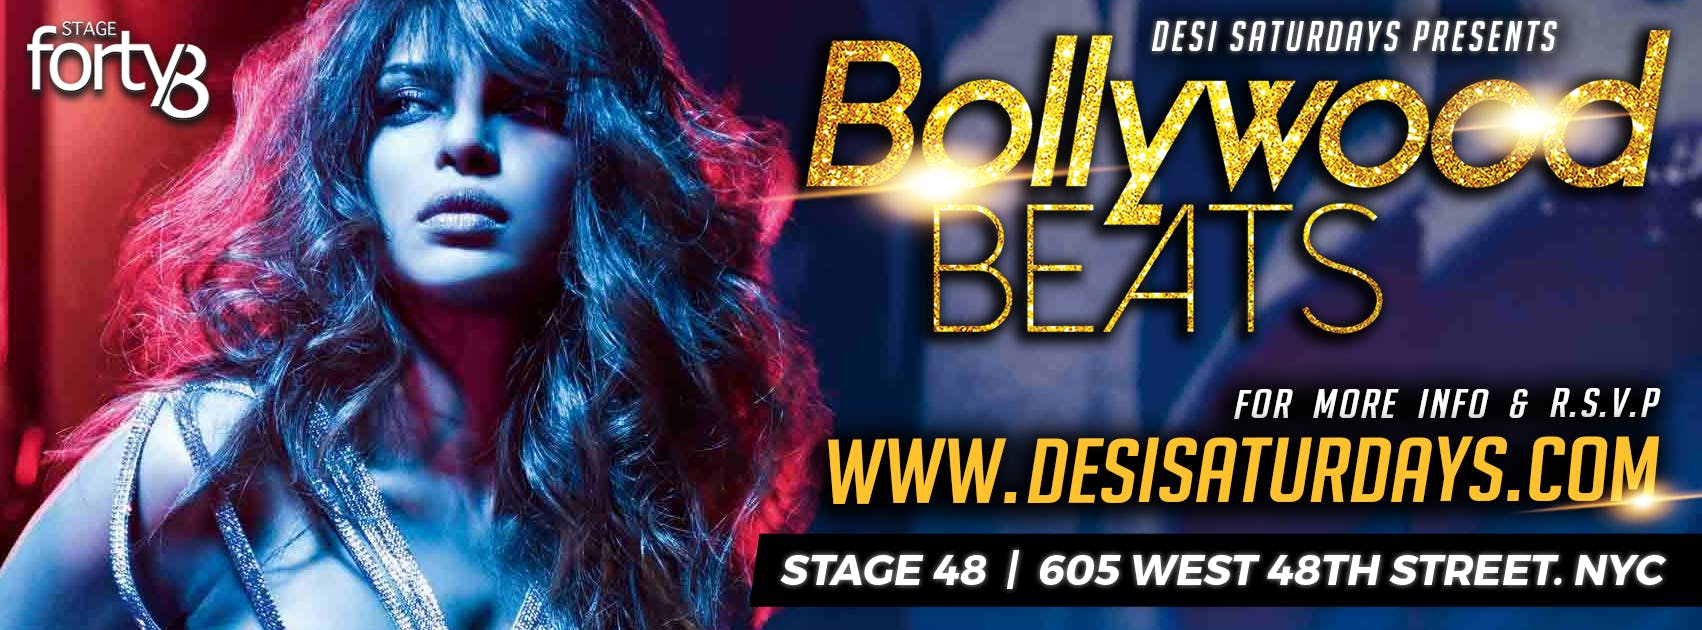 Bollywood Beats @ Stage48 NYC - A Weekly Satu